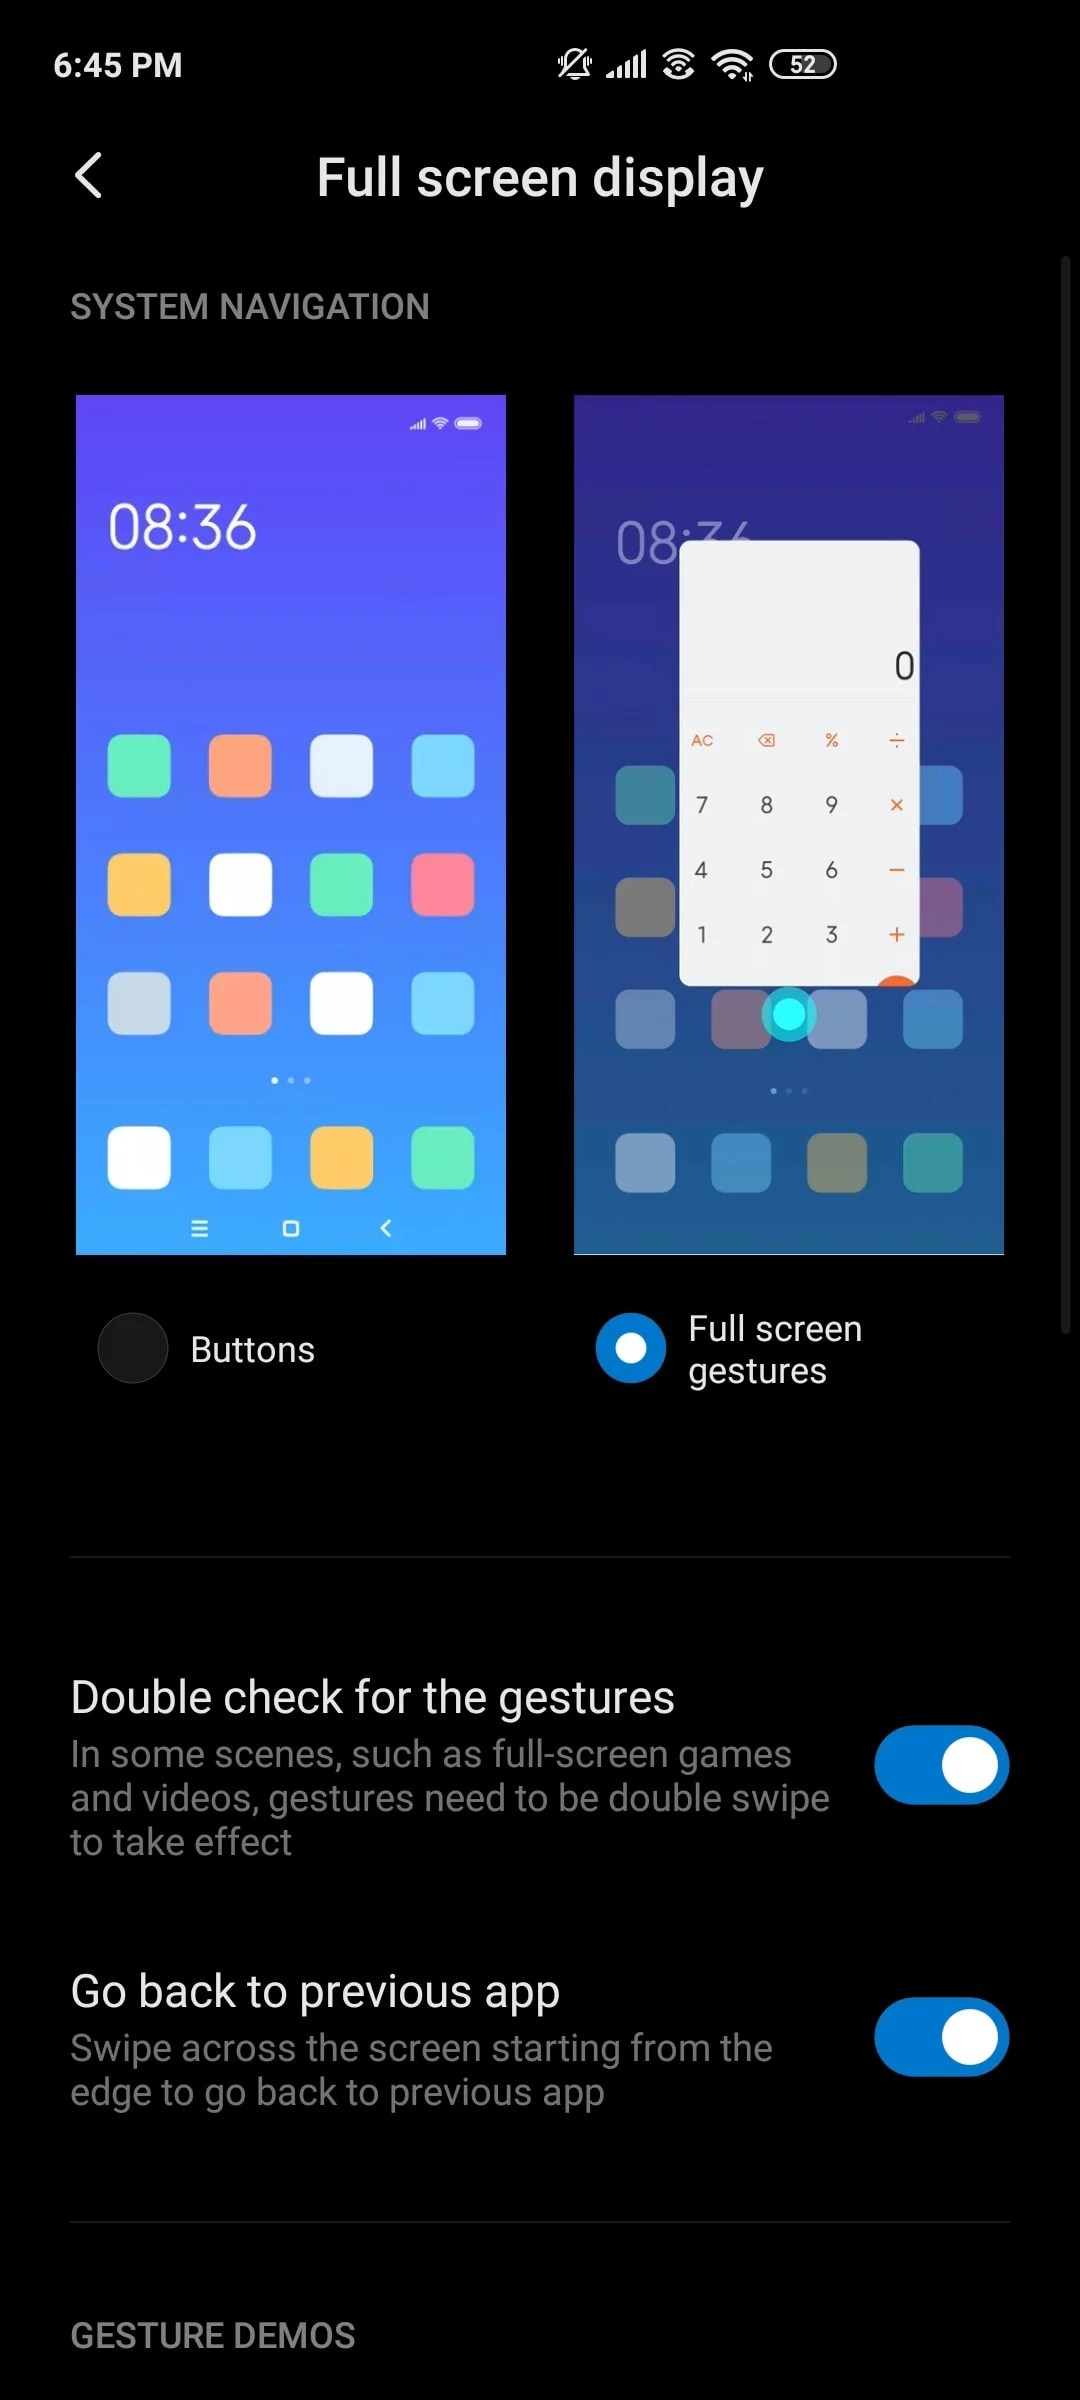 POCO X2 runs on MIUI 11 UI based on Android 10 operating system and updated with March 2020 security patch. Here I share the top 10 best features of POCO X2